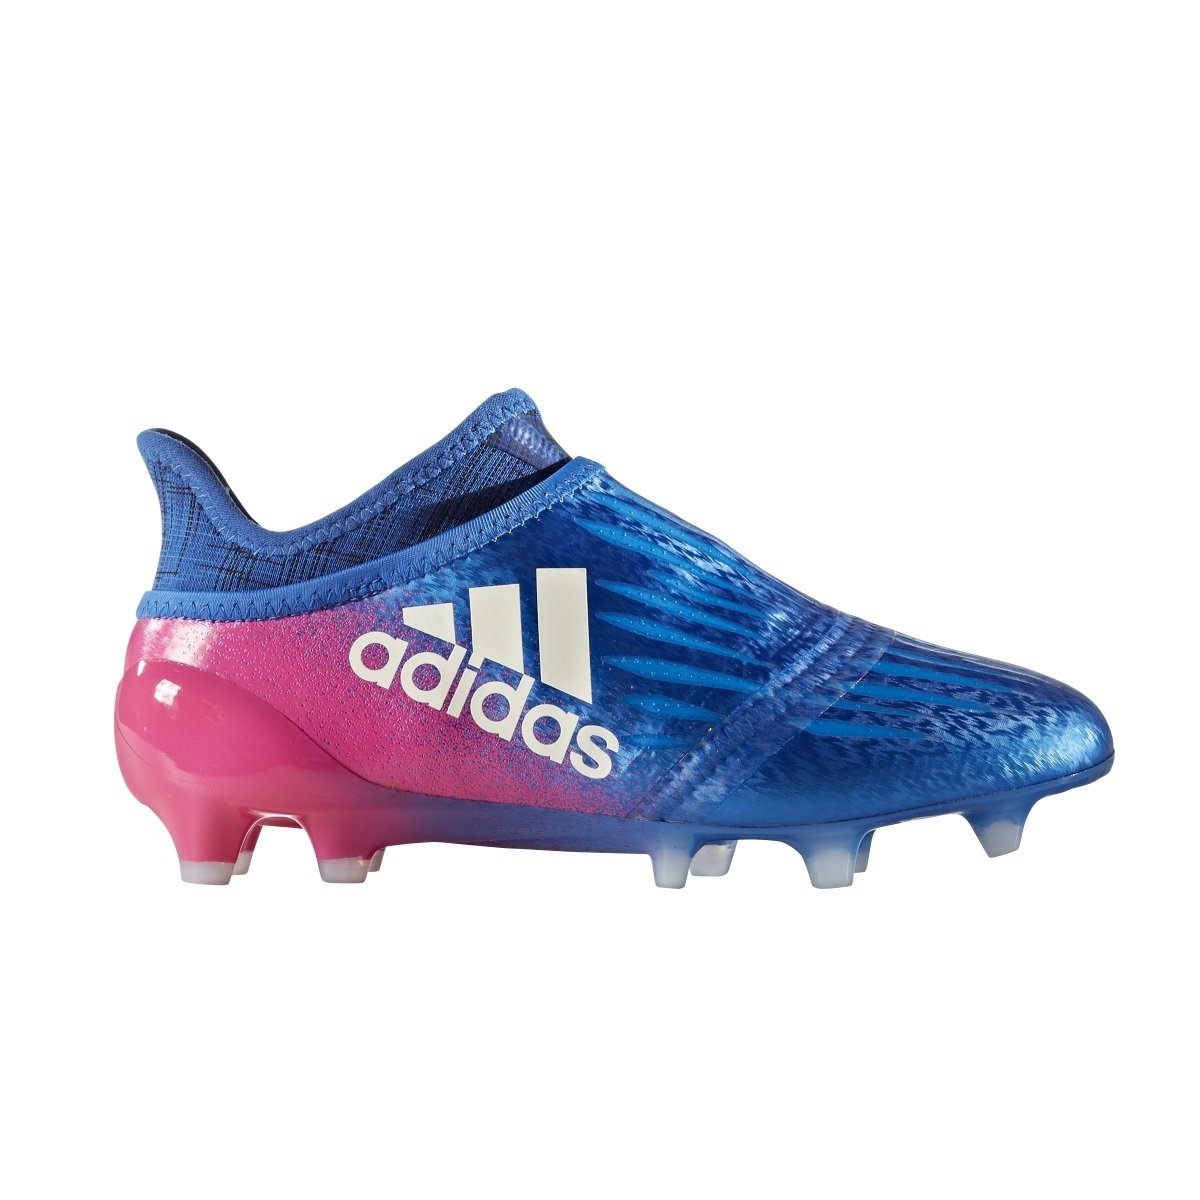 adidas Youth Soccer X 16+ Purechaos Firm Ground Cleats, 5.0 D(M) US, Blue/Footwear White/Shock Pink